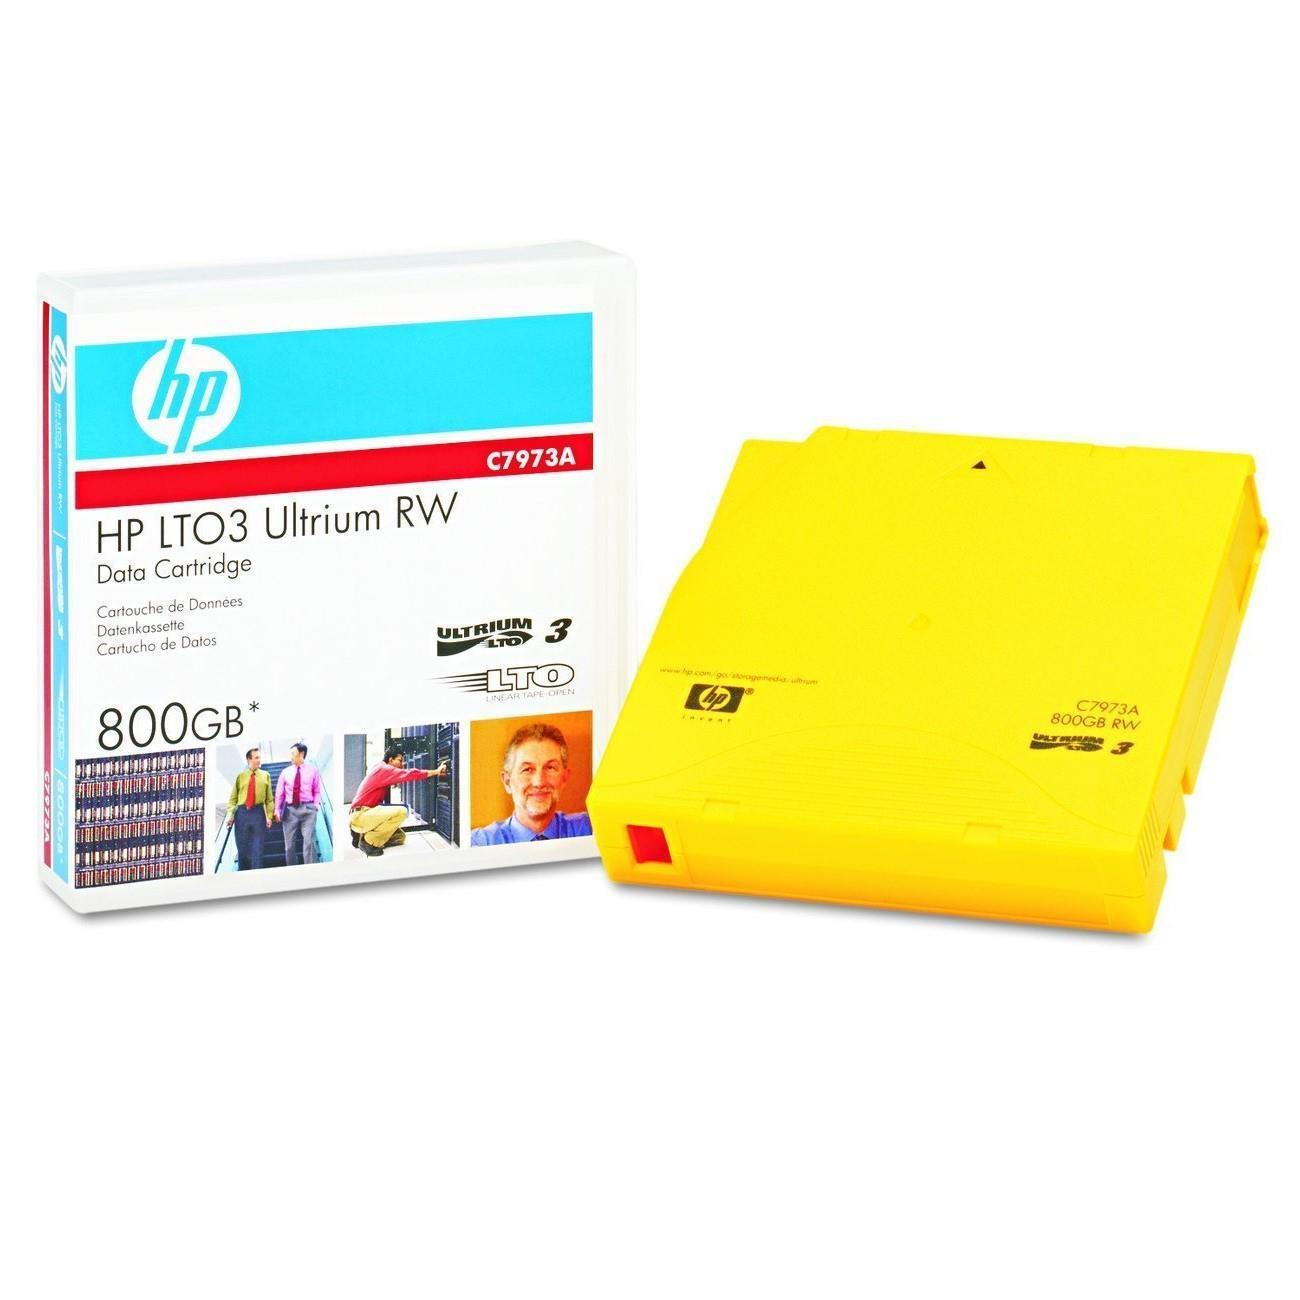 HP Ultrium RW Data Cartridge Storage media - LTO Ultrium - 400 GB